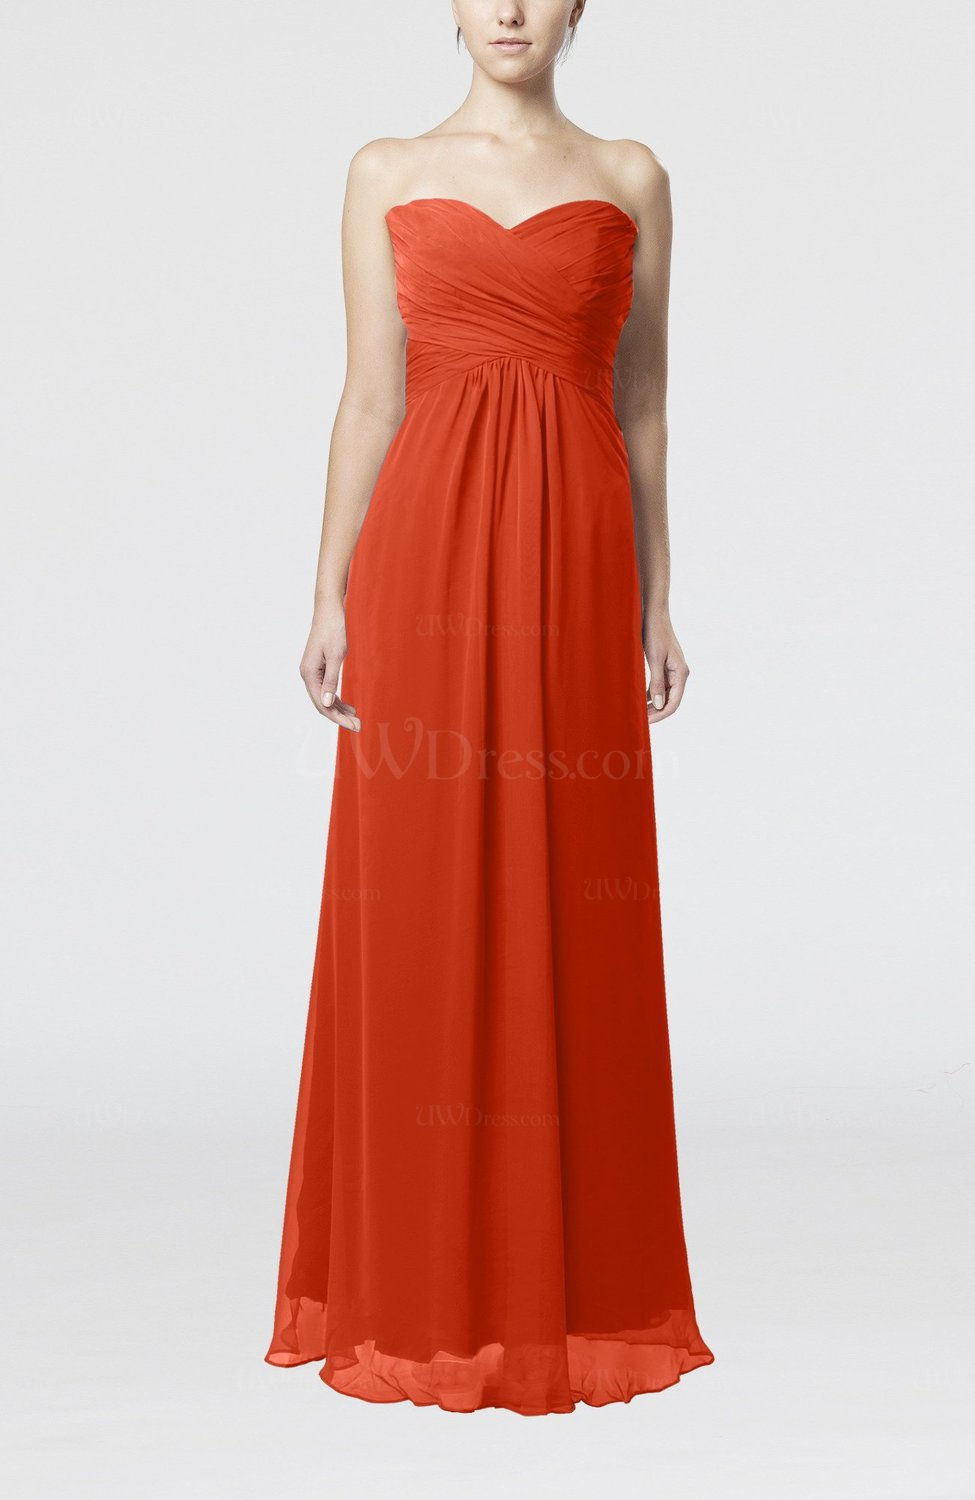 03232d339a6 Rust Simple Empire Sweetheart Zipper Ruching Bridesmaid Dresses (Style  D31922)